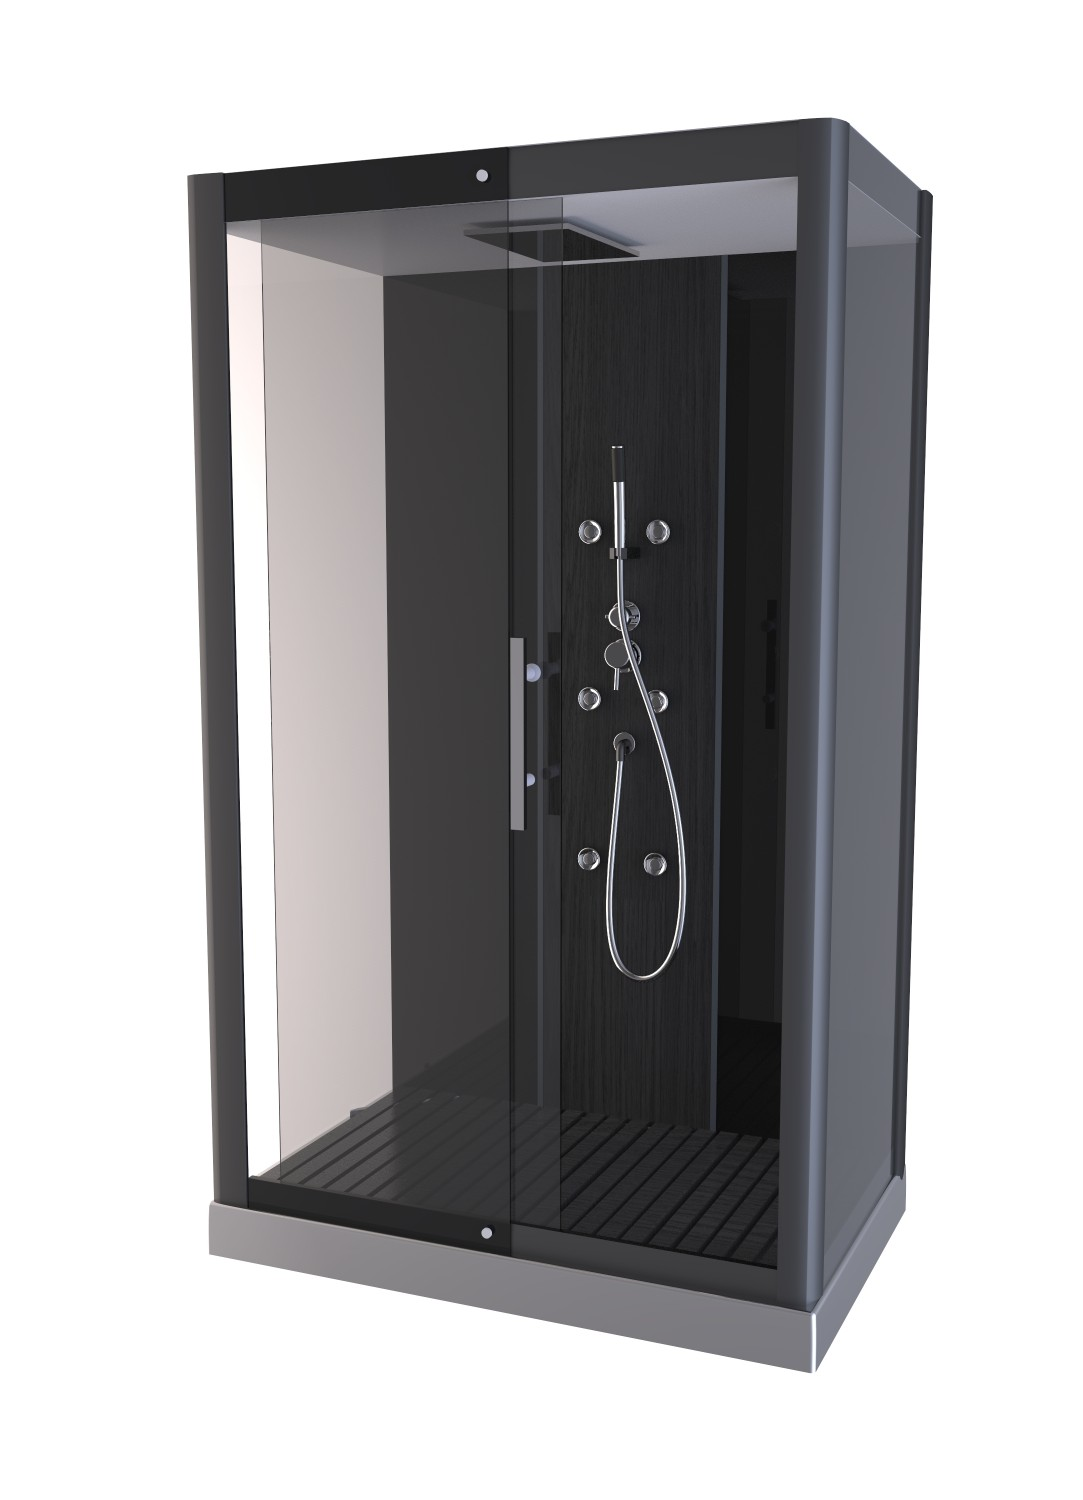 cabine de douche phantom gris homebain vente en ligne cabines de douche. Black Bedroom Furniture Sets. Home Design Ideas